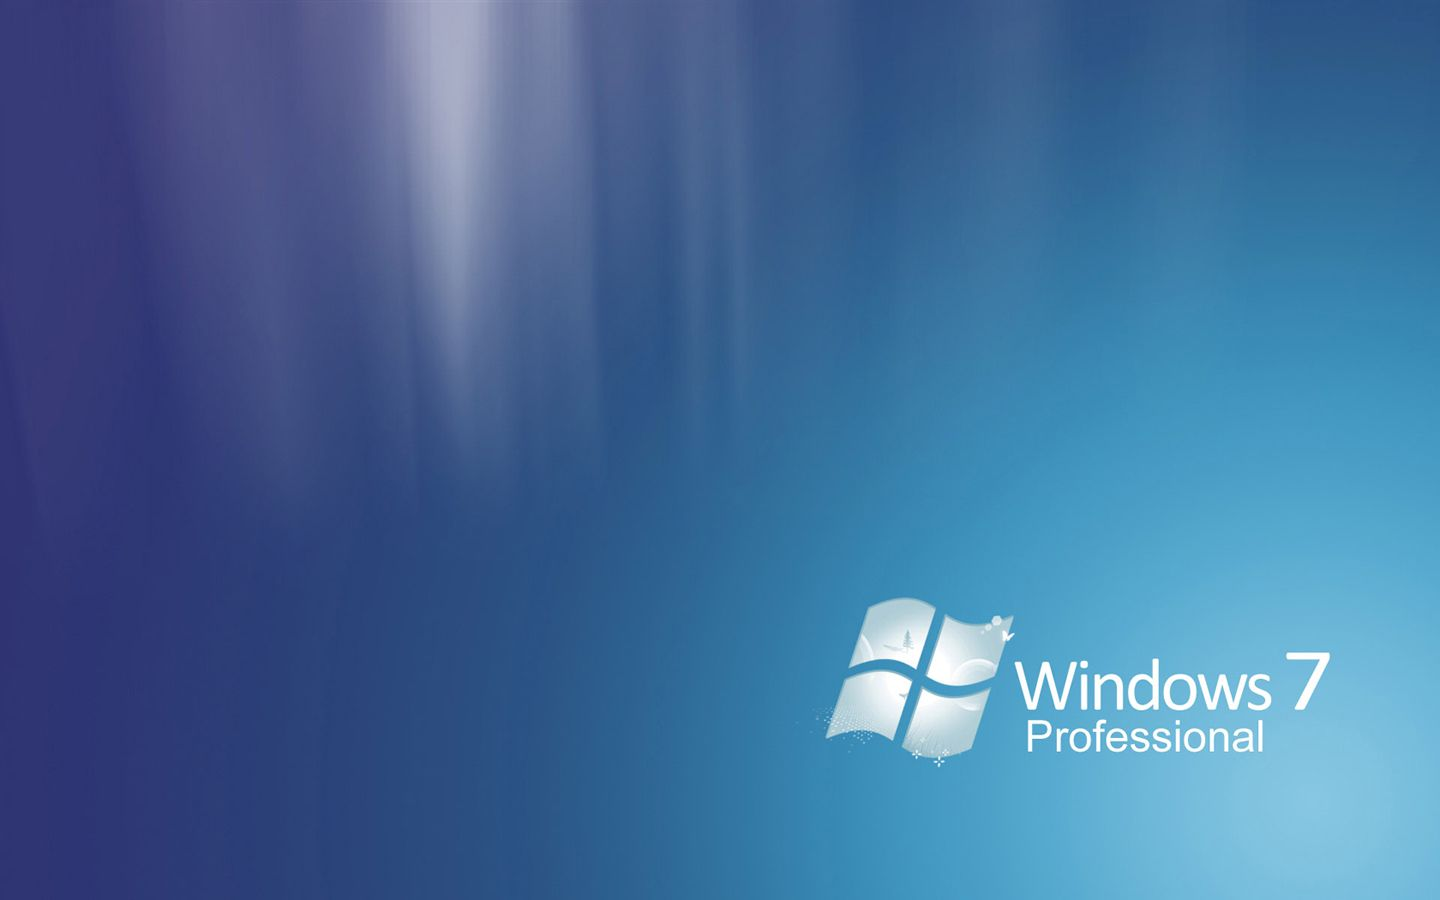 Download Free Hd Windows 7 Background Image For Your Desktop